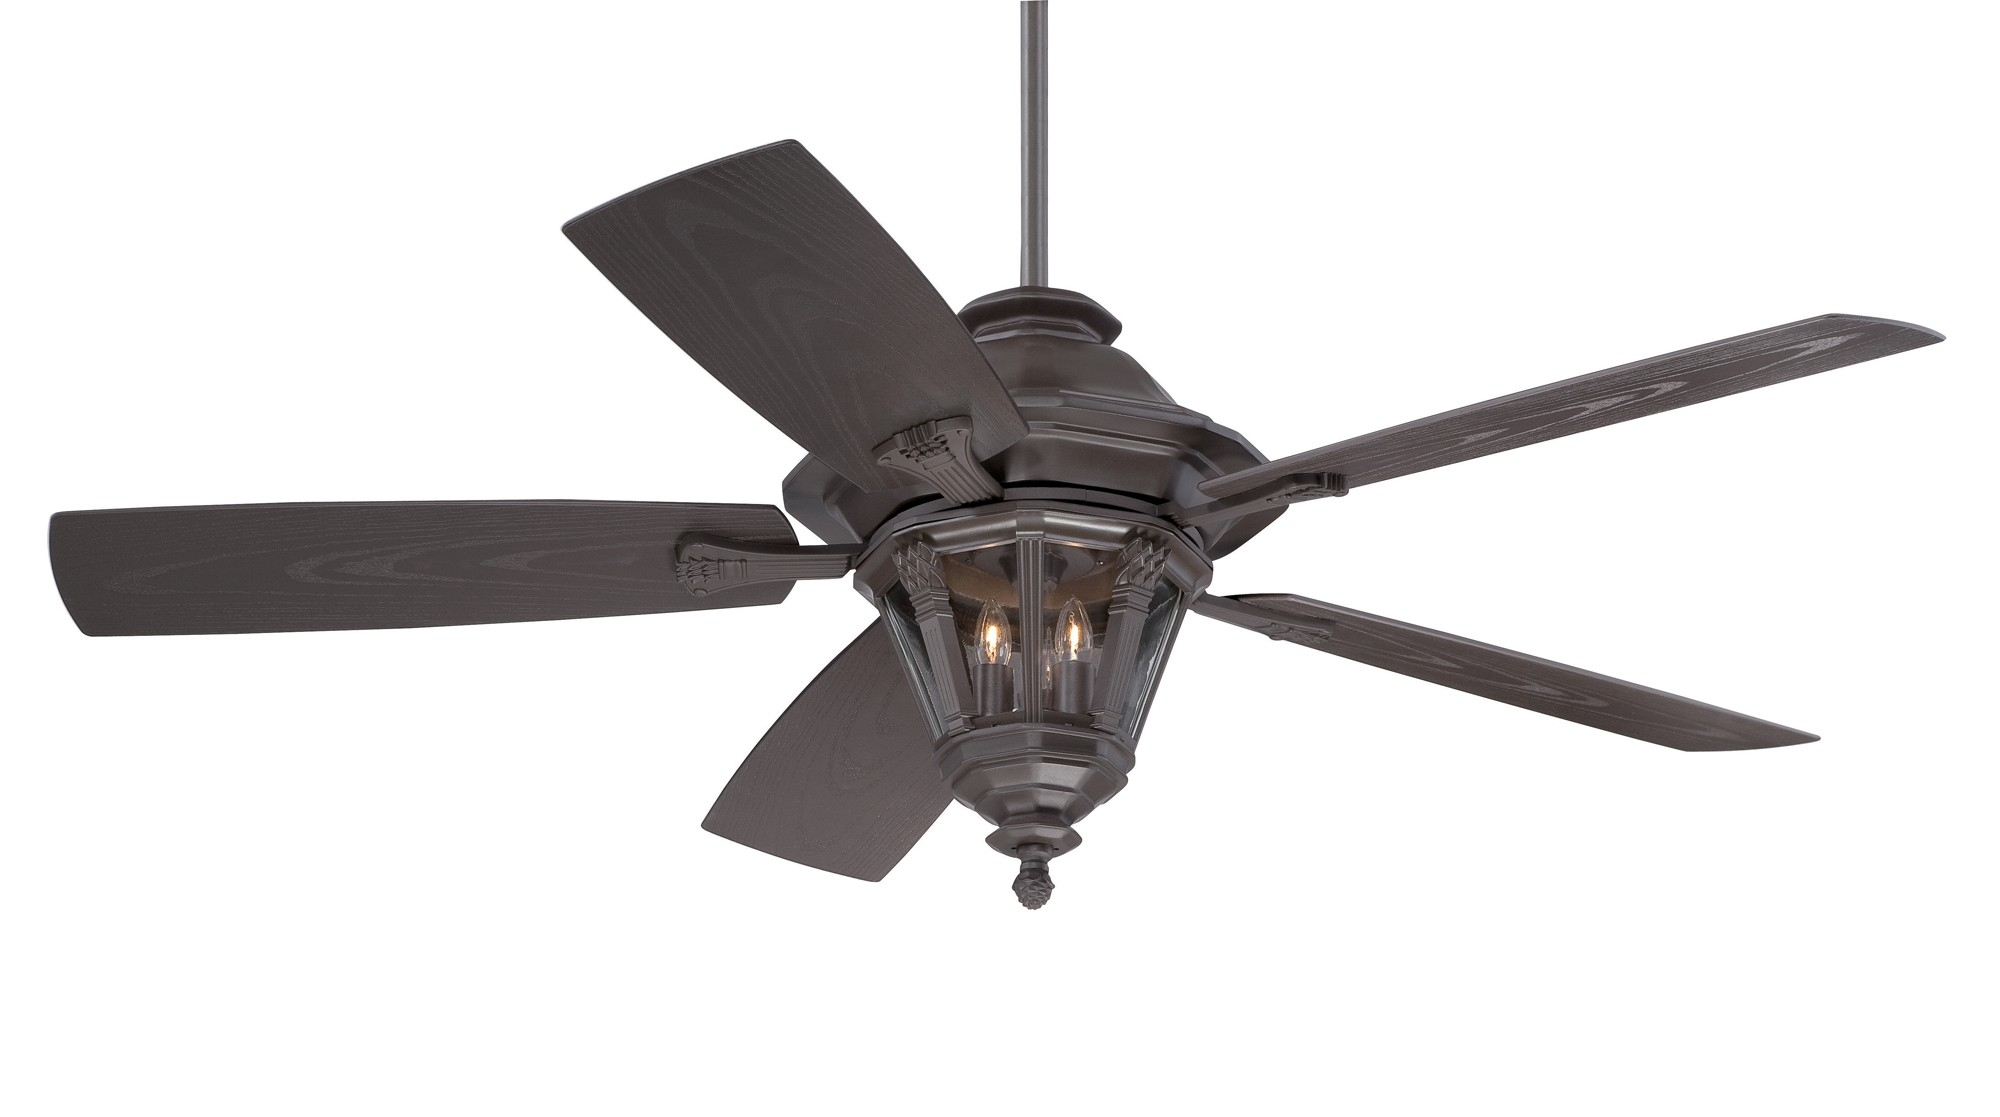 Outdoor Ceiling Fans With Wet Rated Lights Regarding Preferred Ceiling Fans : Ceiling Fan With Remote Industrial Fans Wet Location (View 6 of 20)